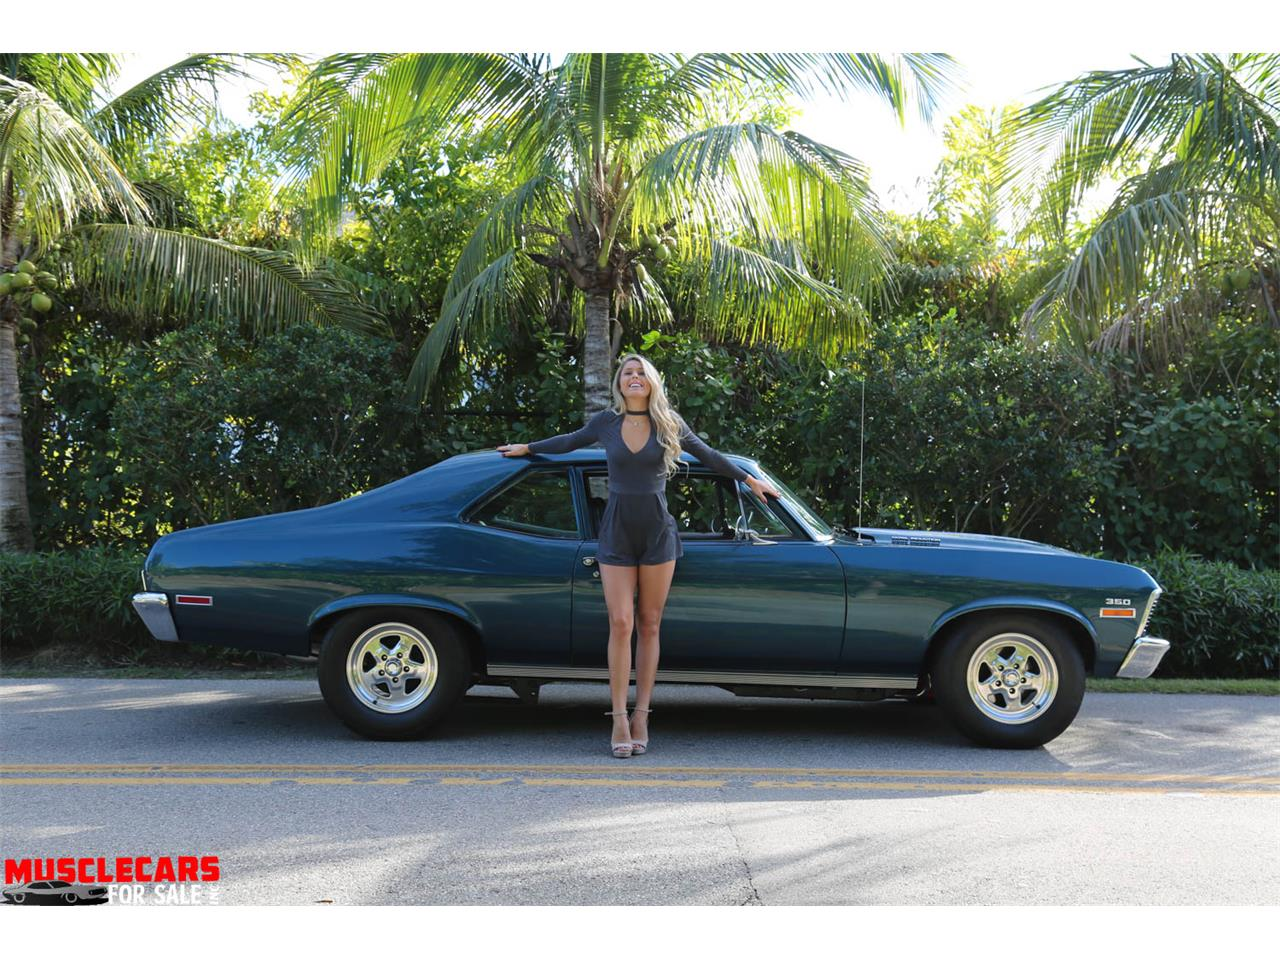 1971 Chevrolet Nova Ss For Sale Classiccars Com Cc 1062345